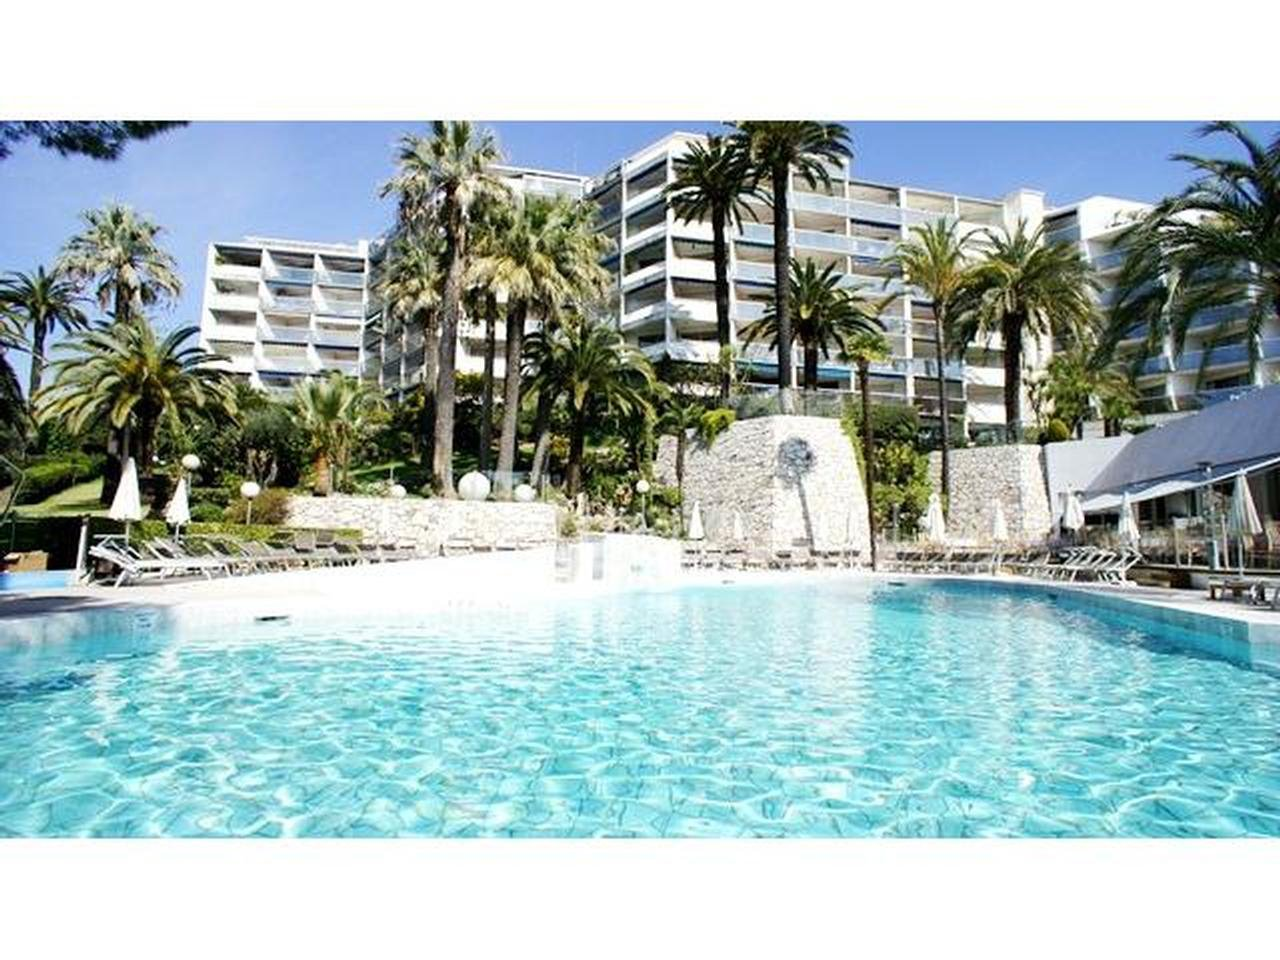 Apartment for sale swimming pool sea view 06400 CANNES Montfleury Riviera